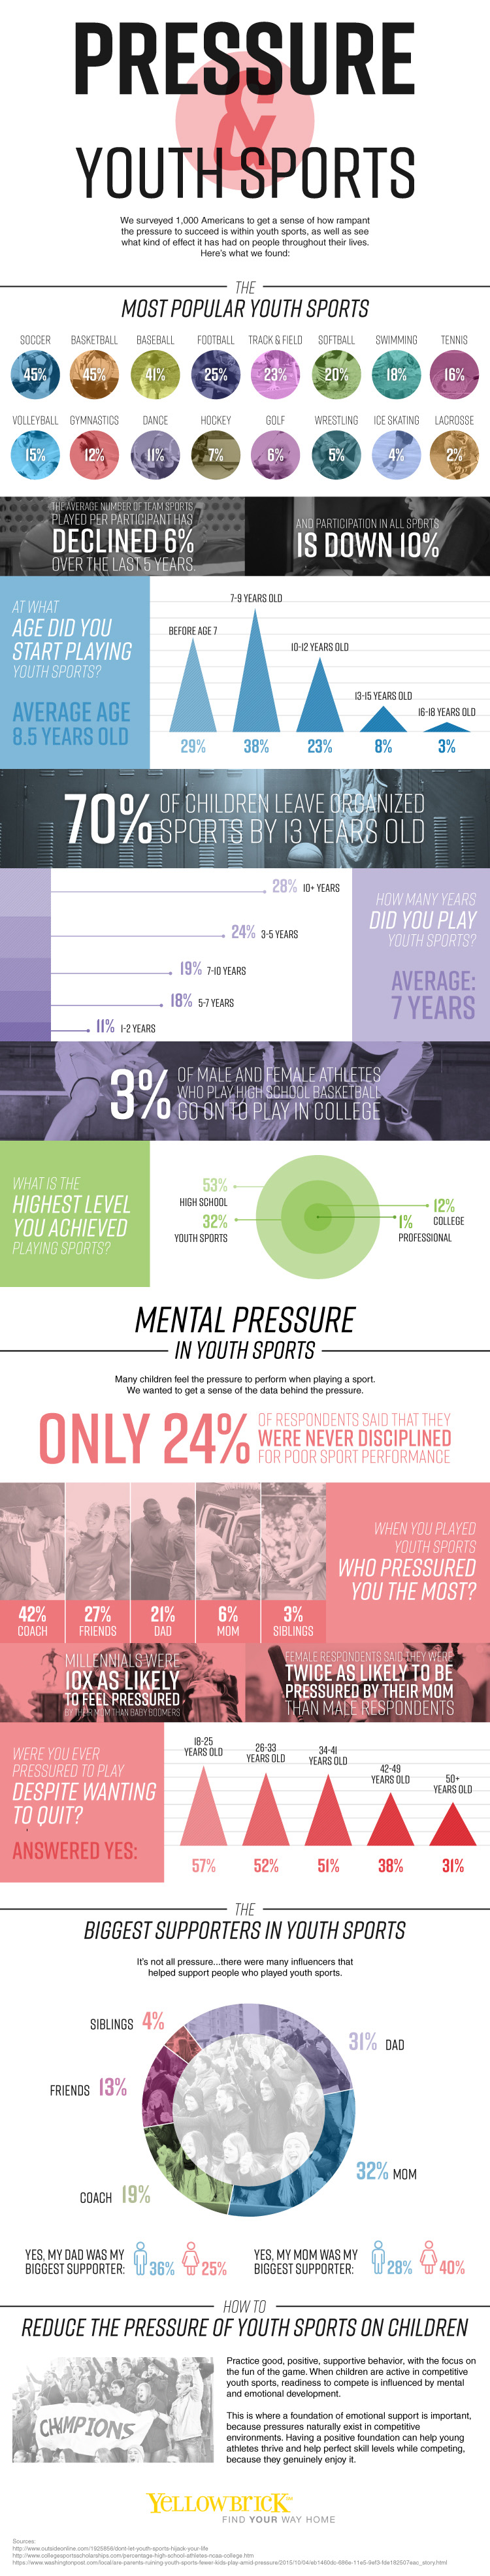 Pressure & Youth Sports